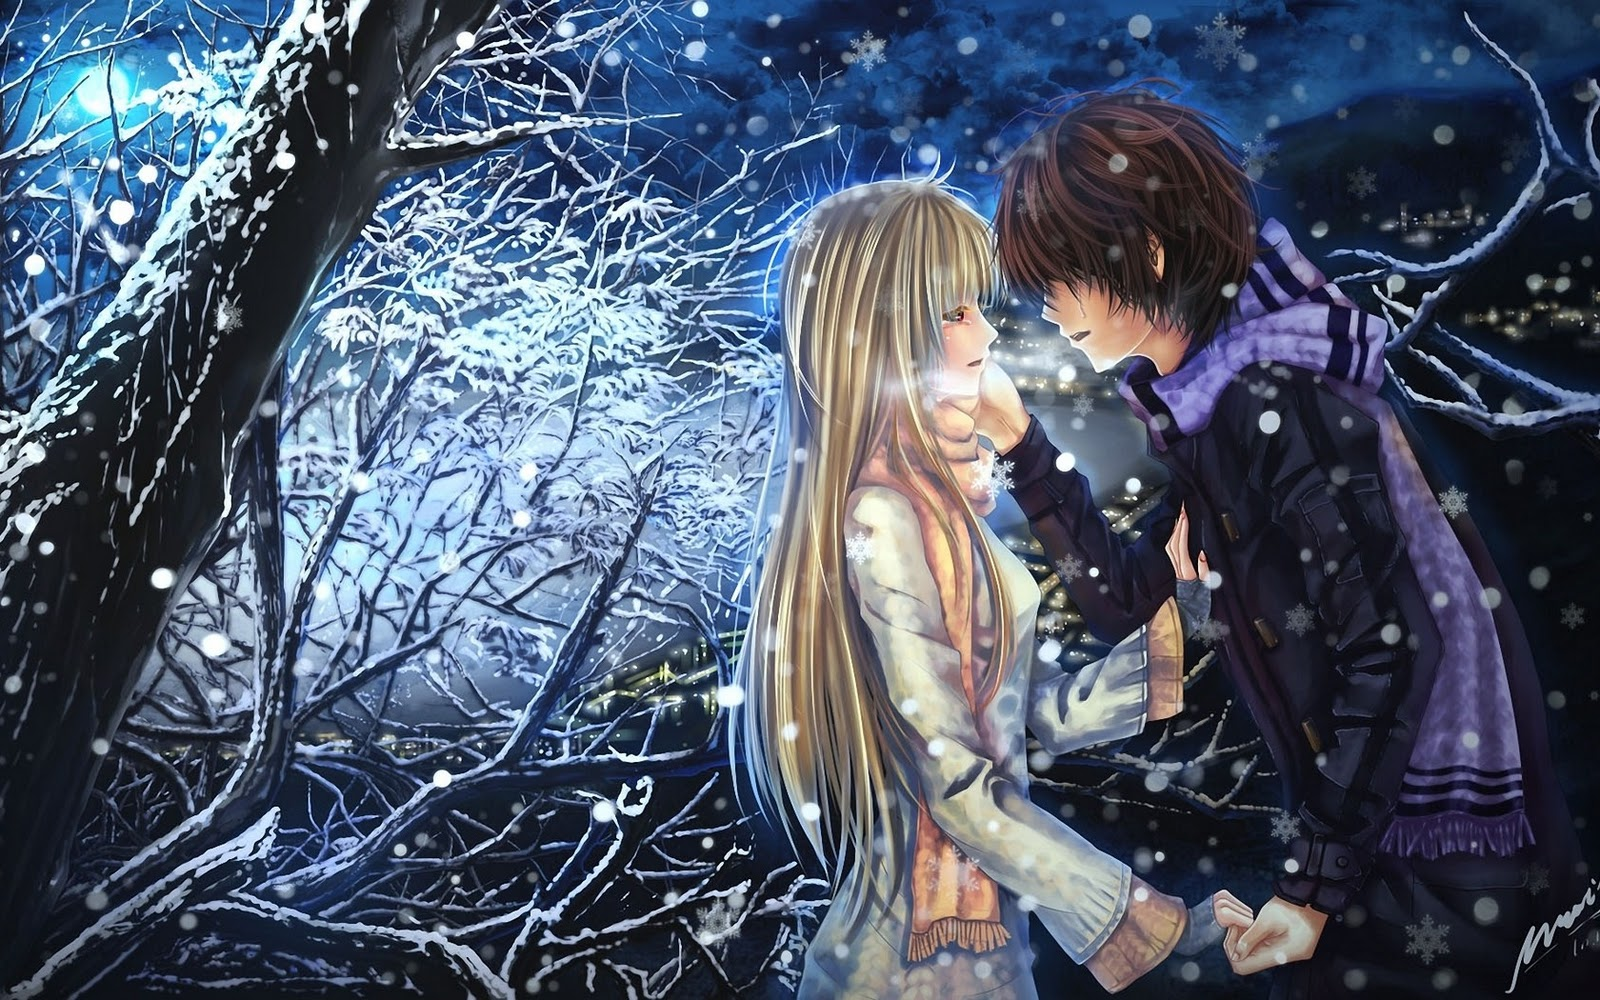 Love couple Hd Wallpaper Latest : A2Z Wallpapers: Anime couples In Love Wallpapers